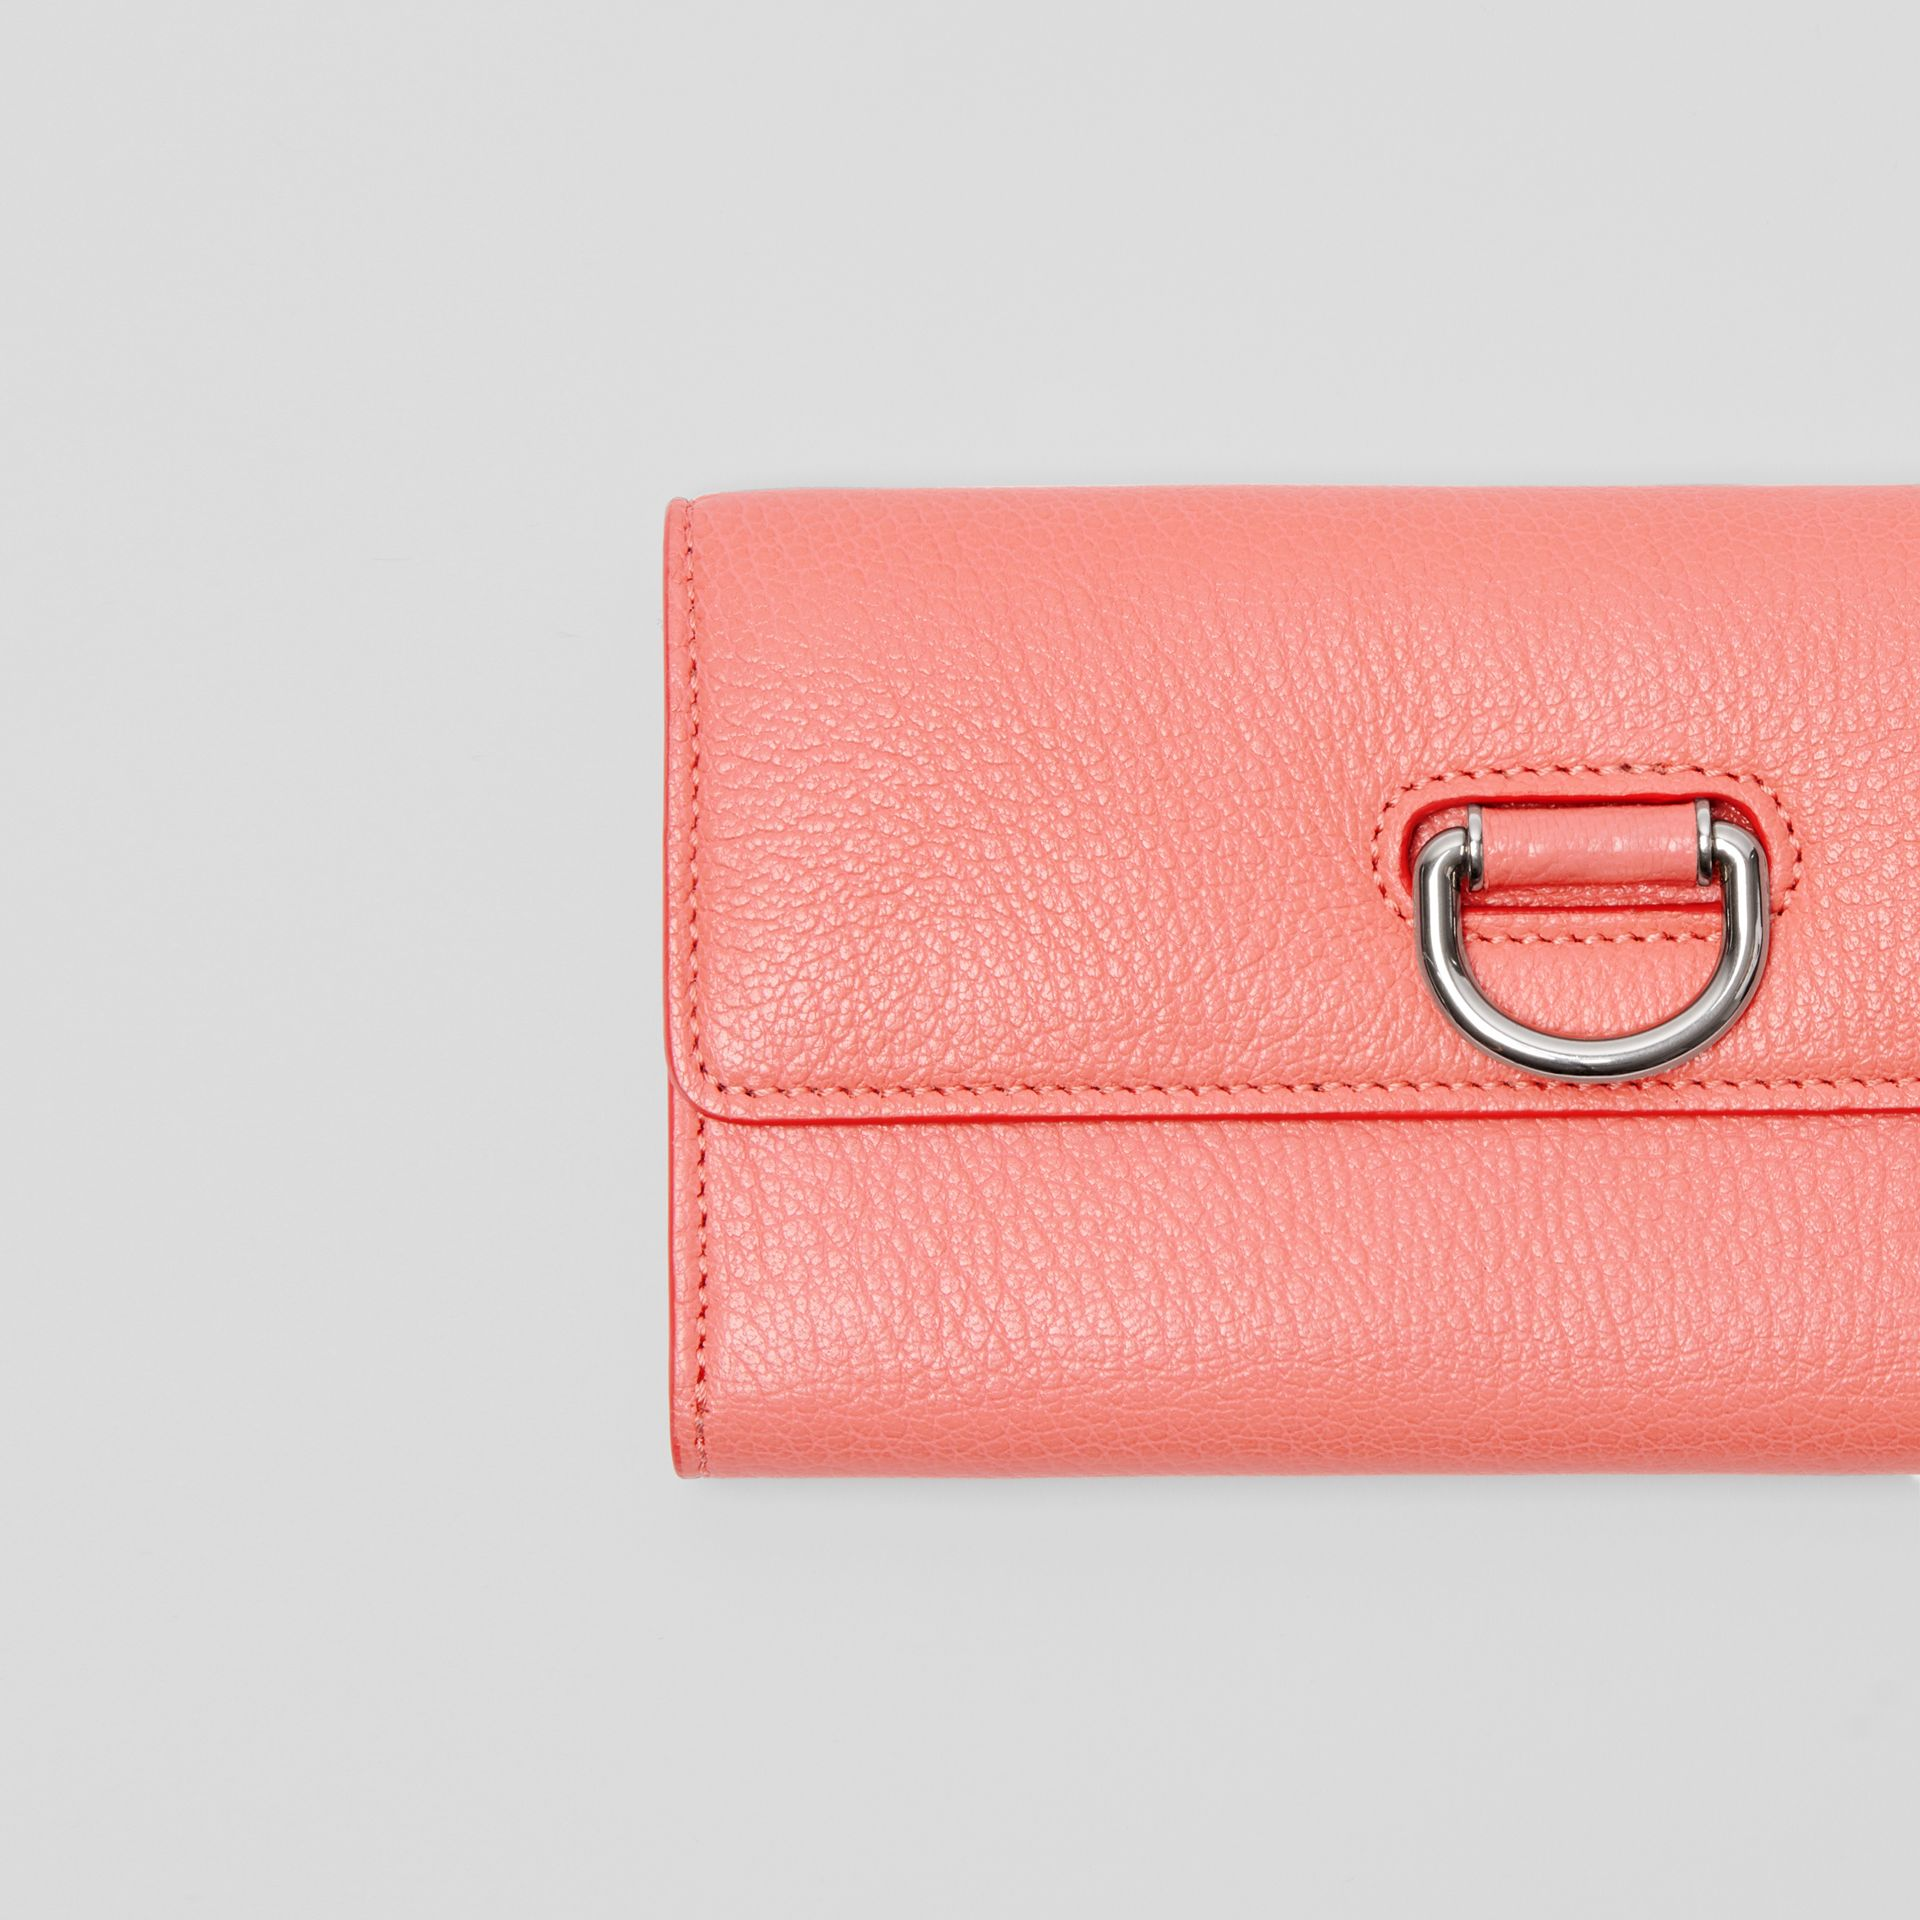 D-ring Grainy Leather Continental Wallet in Bright Coral Pink - Women | Burberry Canada - gallery image 1